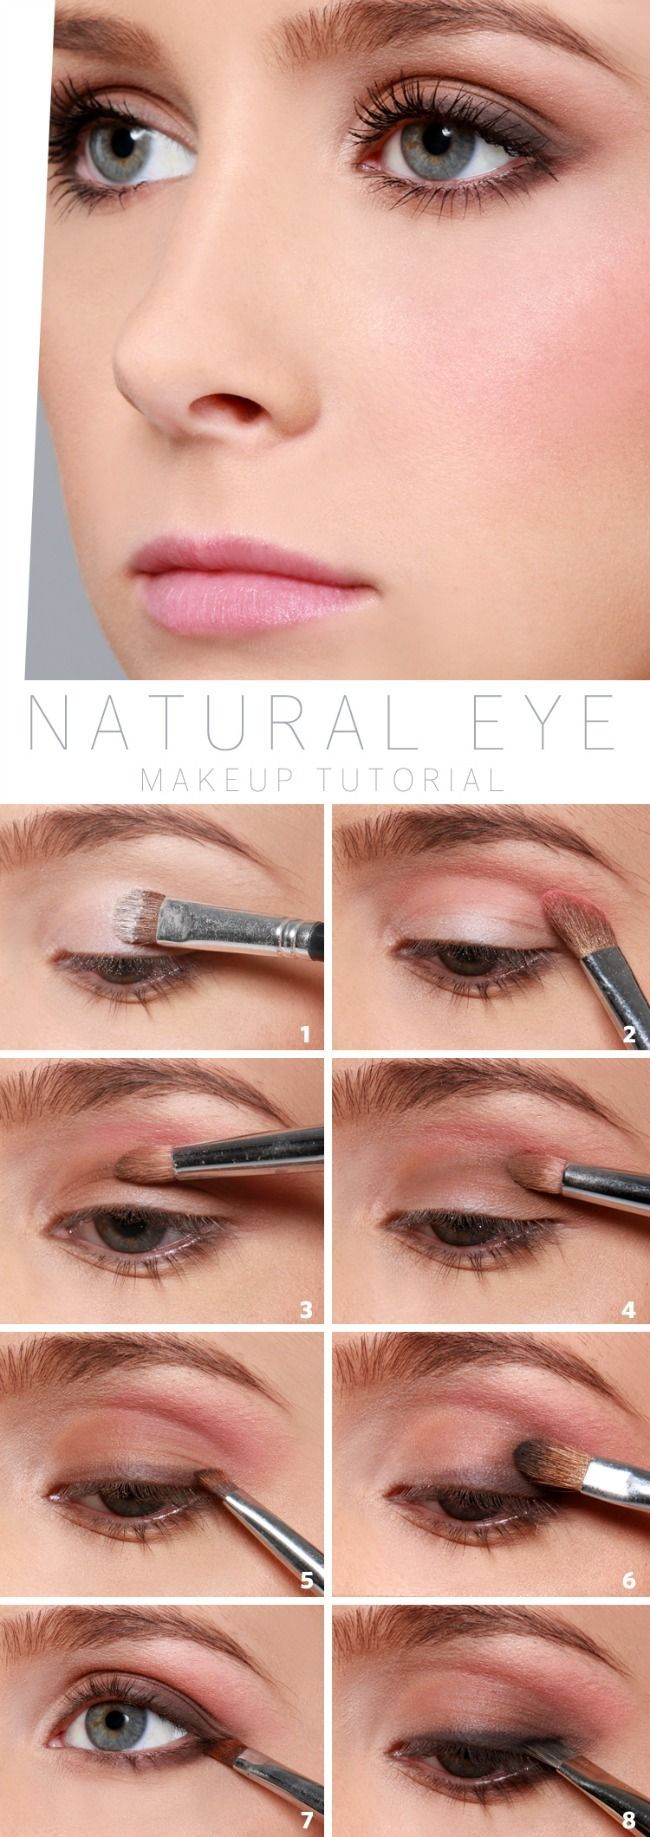 The 11 Best Eye Makeup Tips and Tricks | Natural Eye Makeup Tutorial Eyebrow Makeup Tips